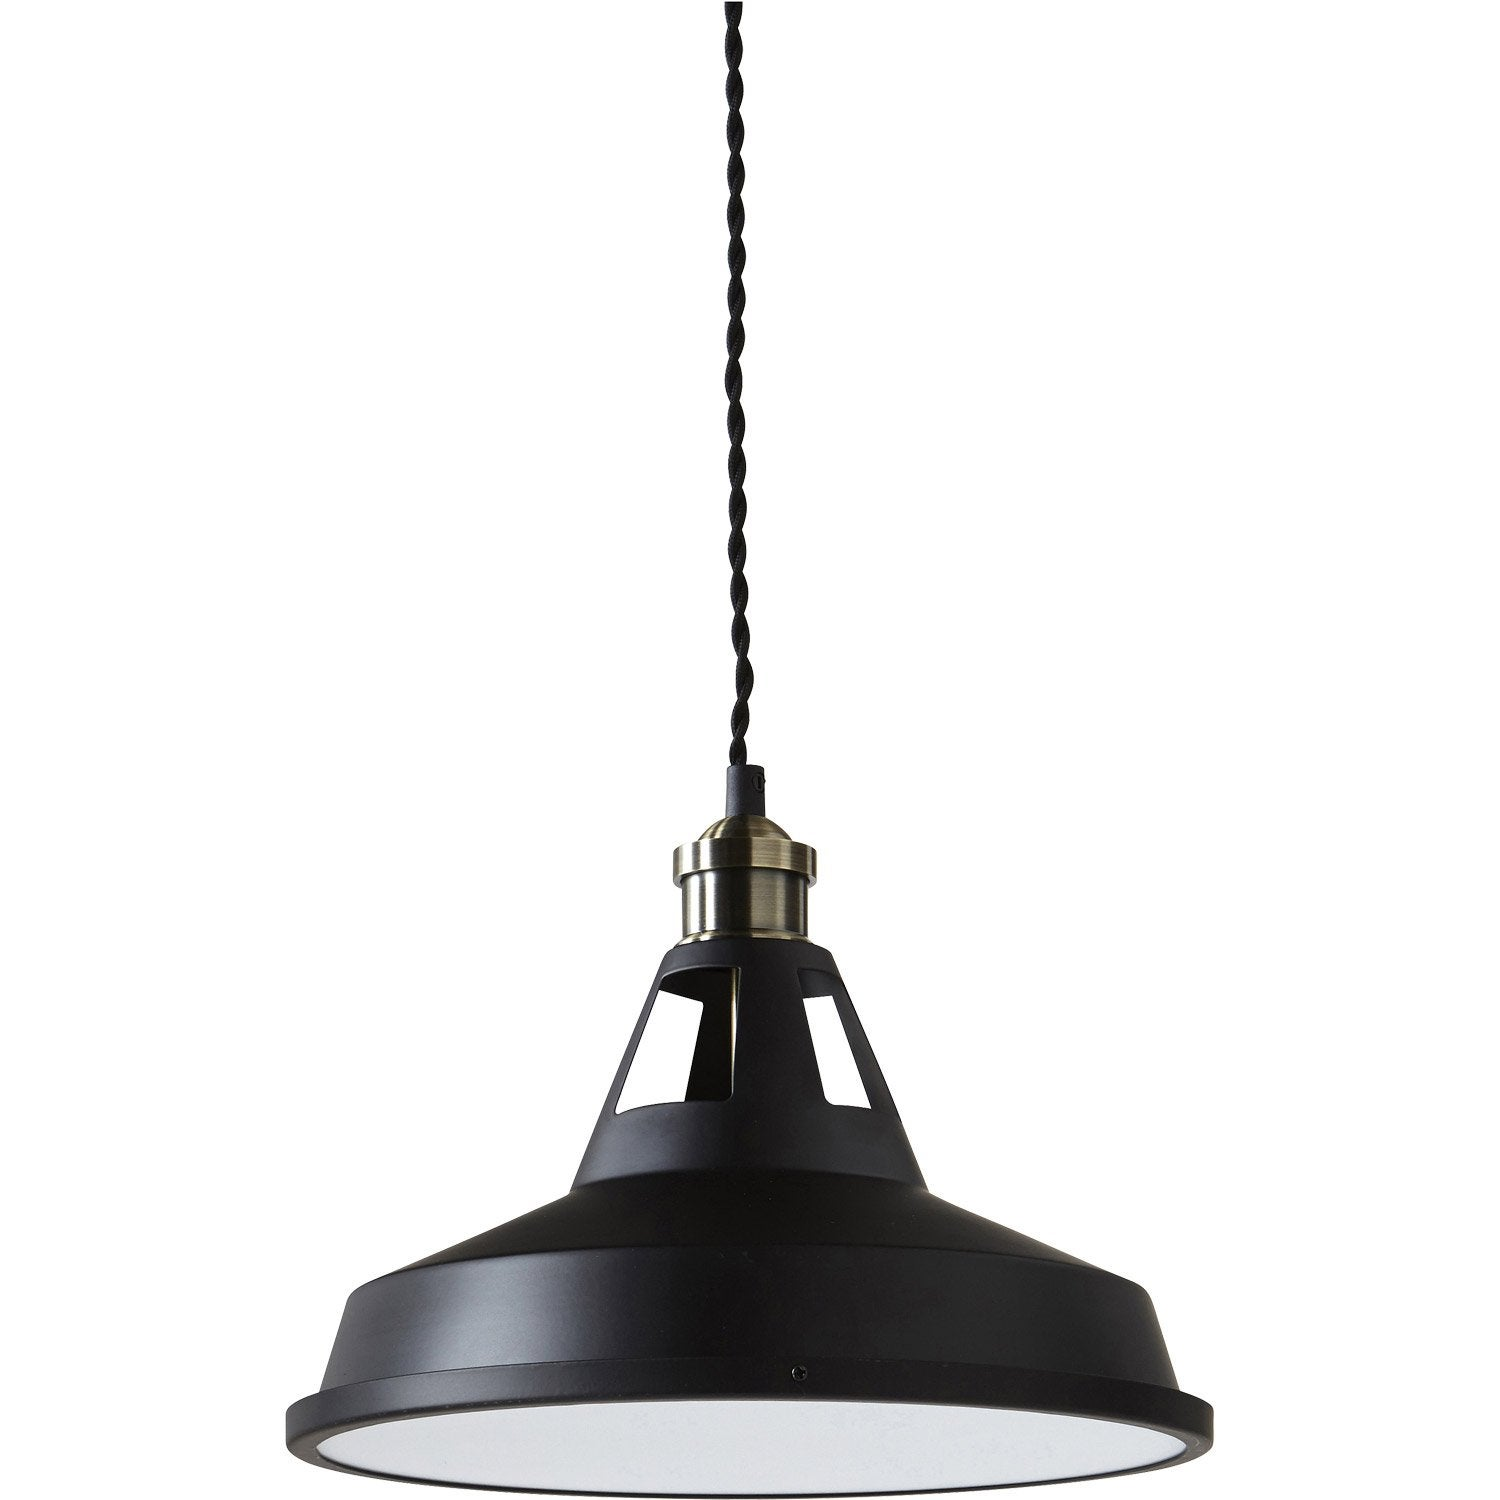 Suspension led design mineko m tal noir 1 x 14 w inspire leroy merlin - Suspension new york leroy merlin ...